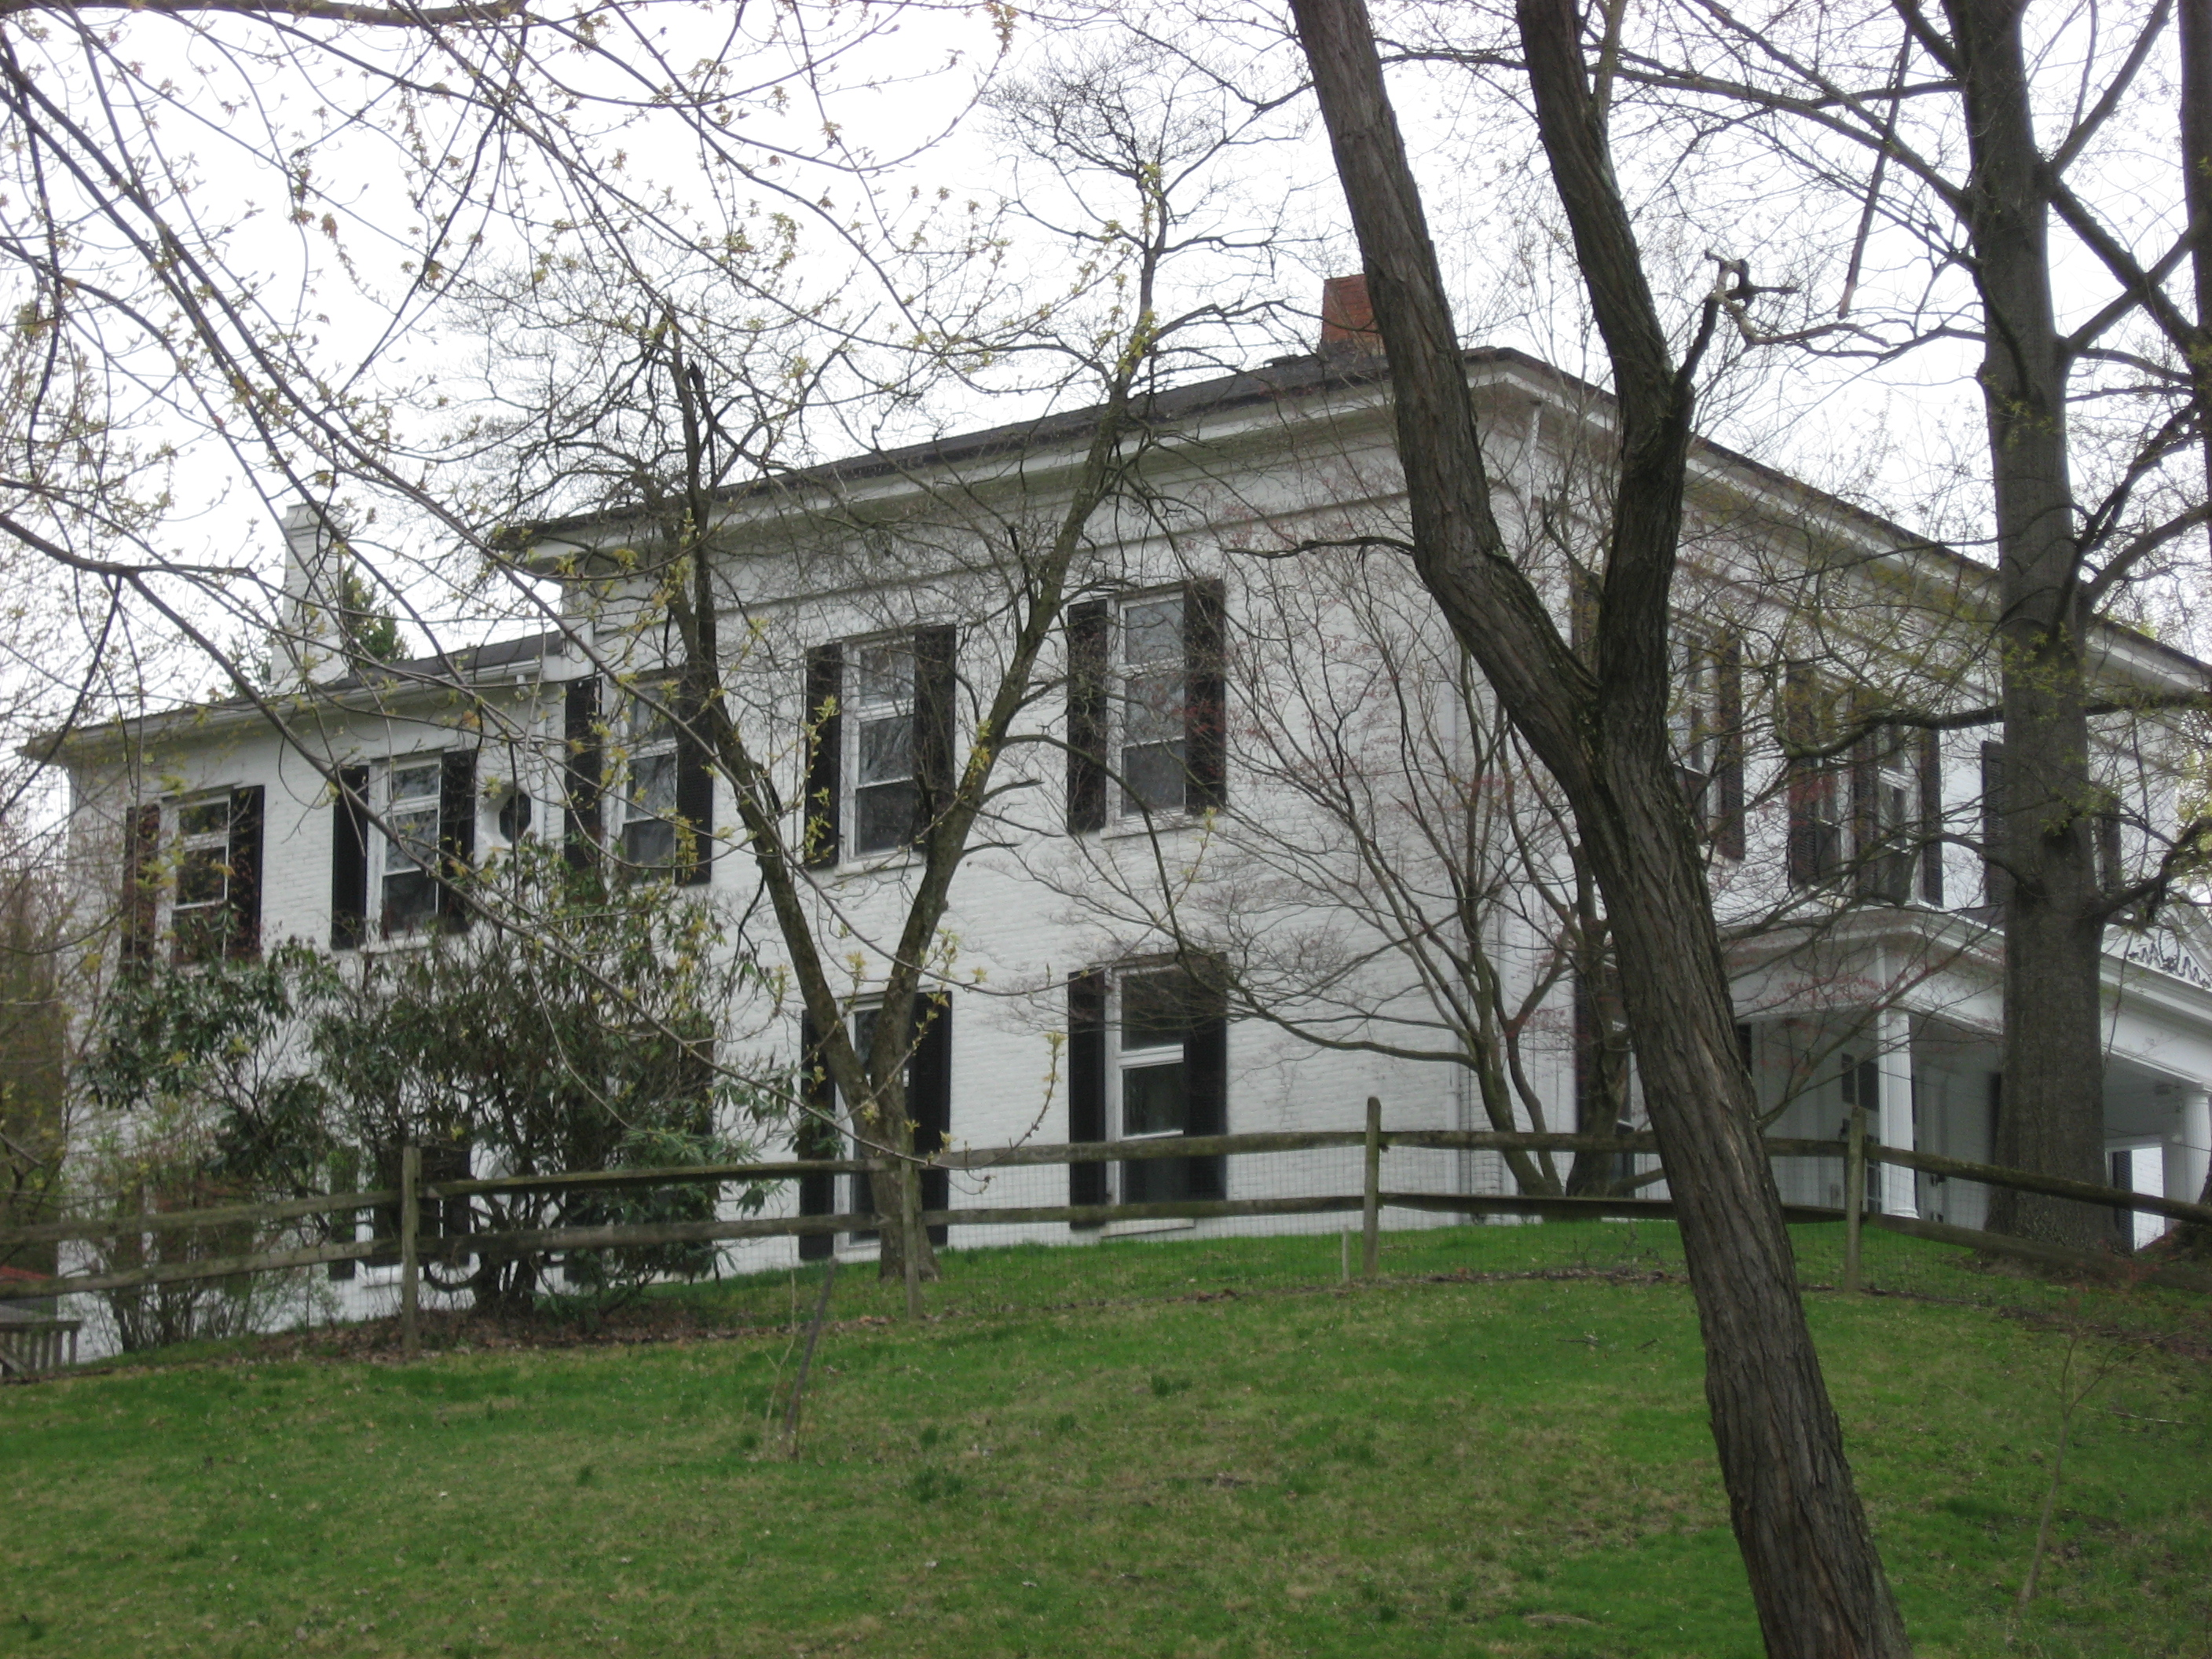 buildings and structures in brooke county  west virginia